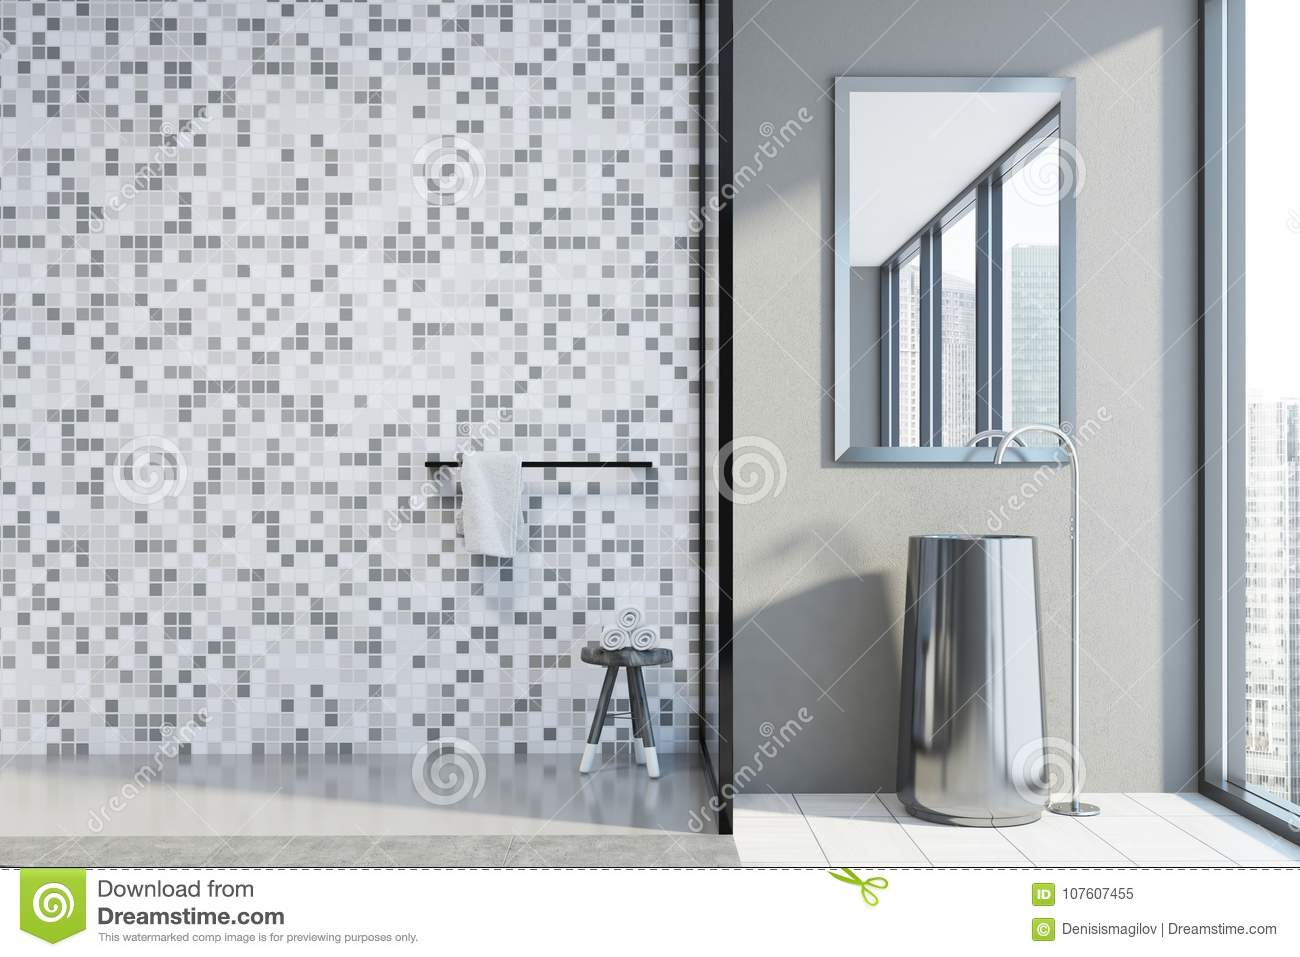 Attrayant Concrete And Tiled Bathroom Bathroom Interior With A Concrete Floor, A Shower  Stall, And A Round Sink. 3d Rendering Mock Up